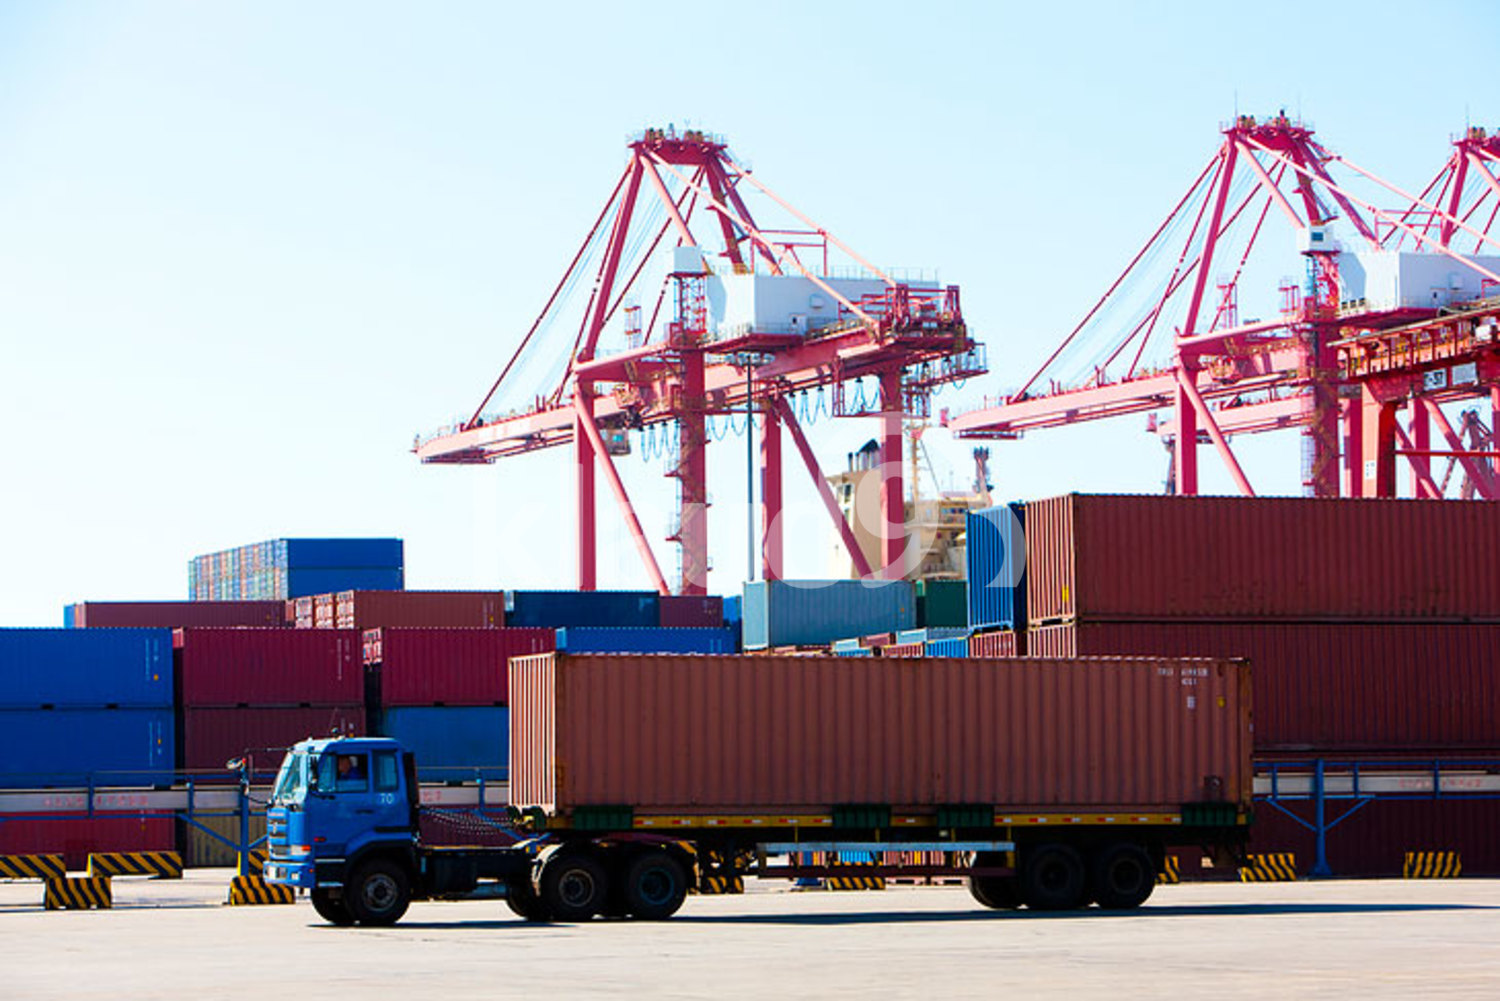 Cranes and cargo containers in shipping dock